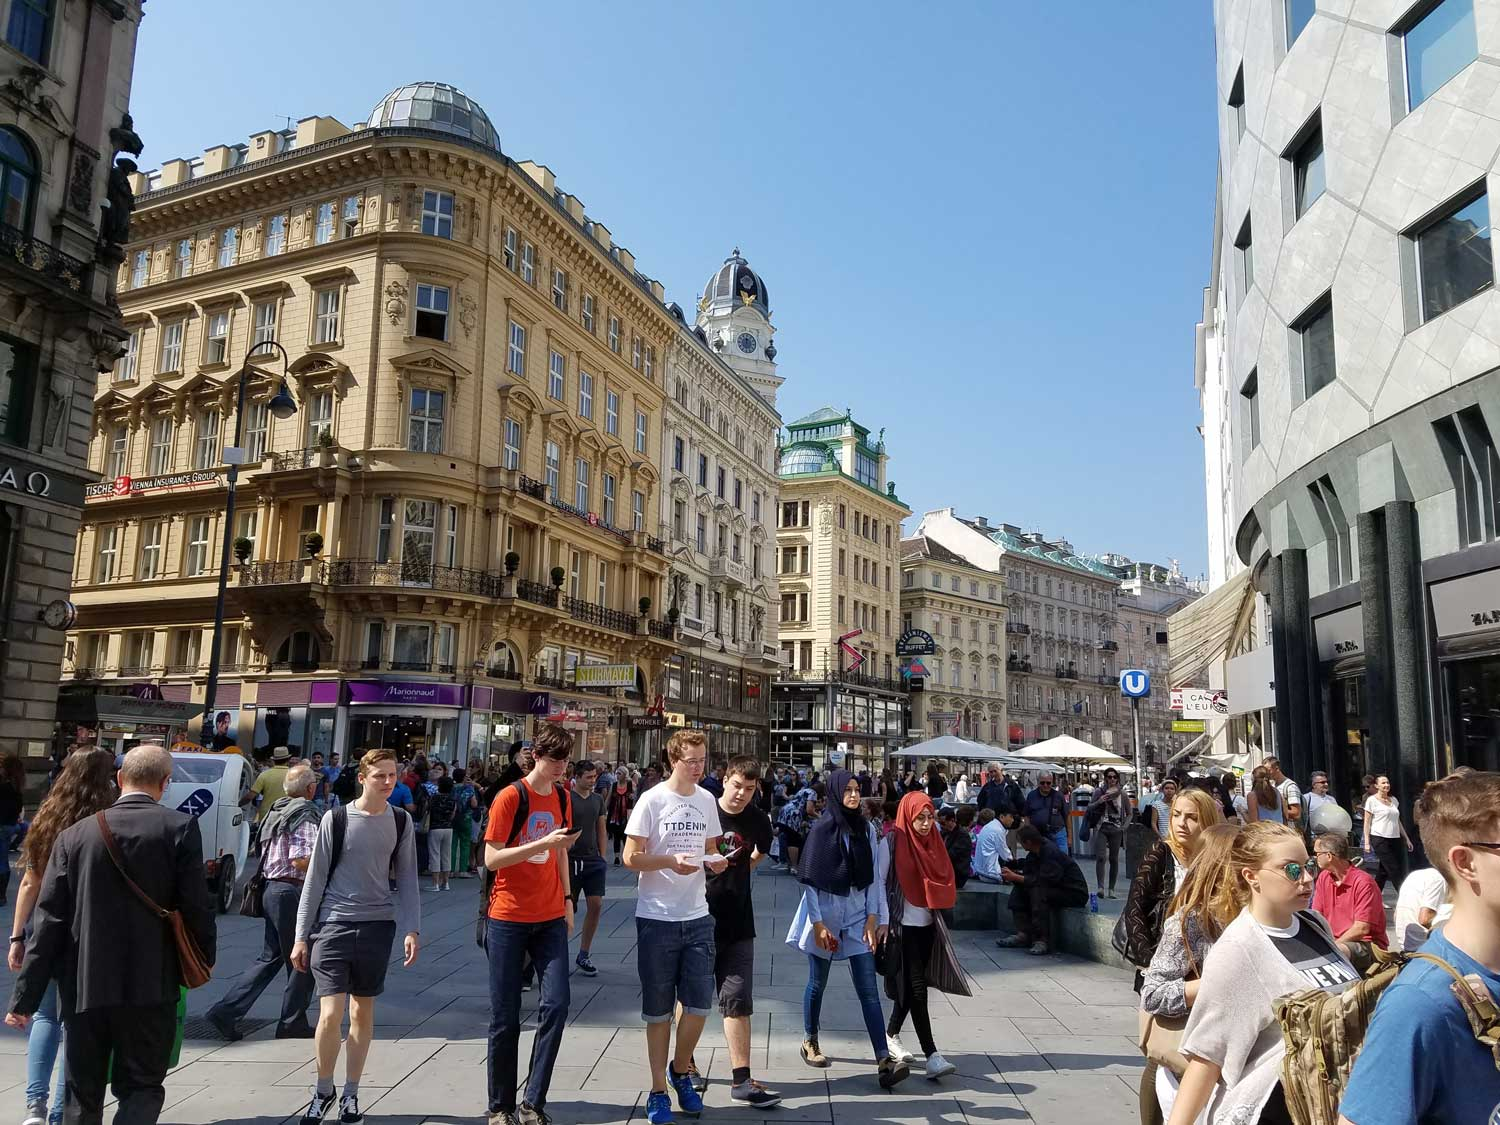 The main shopping district in the heart of Vienna is bustling with life and culture. Love those old Viennese buildings and winding pedestrian-only streets.